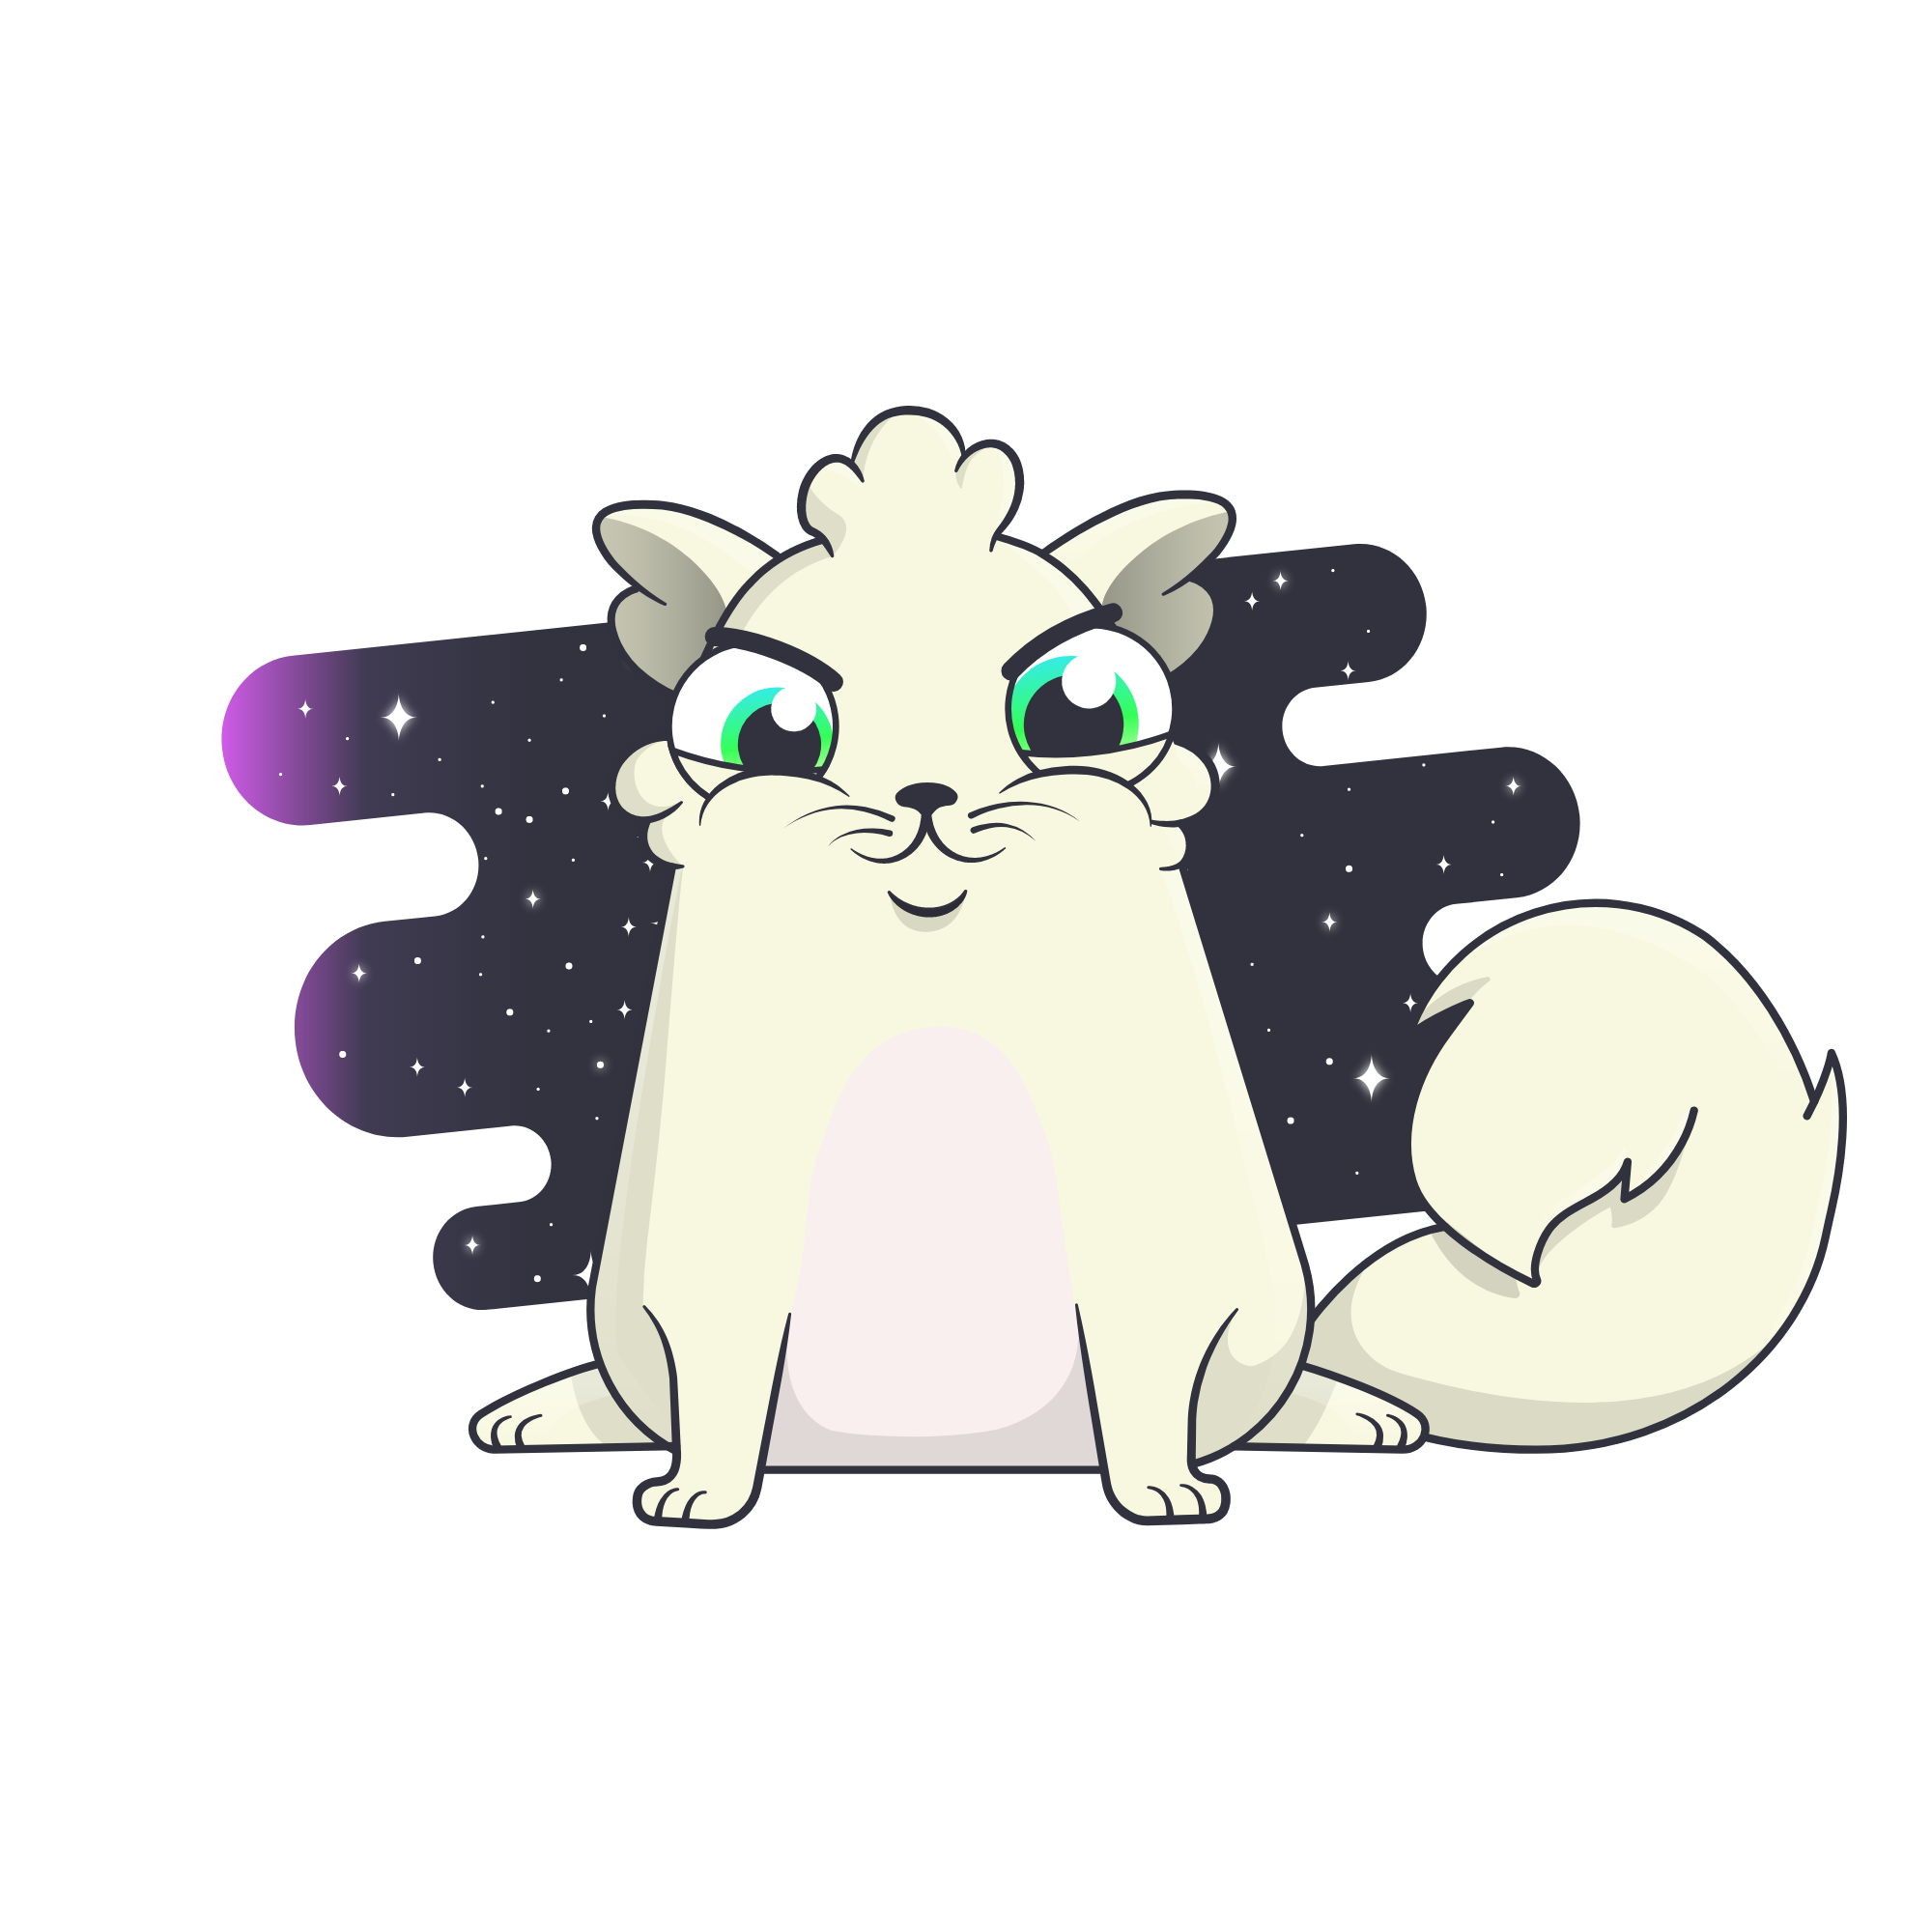 cryptokitty #1816845